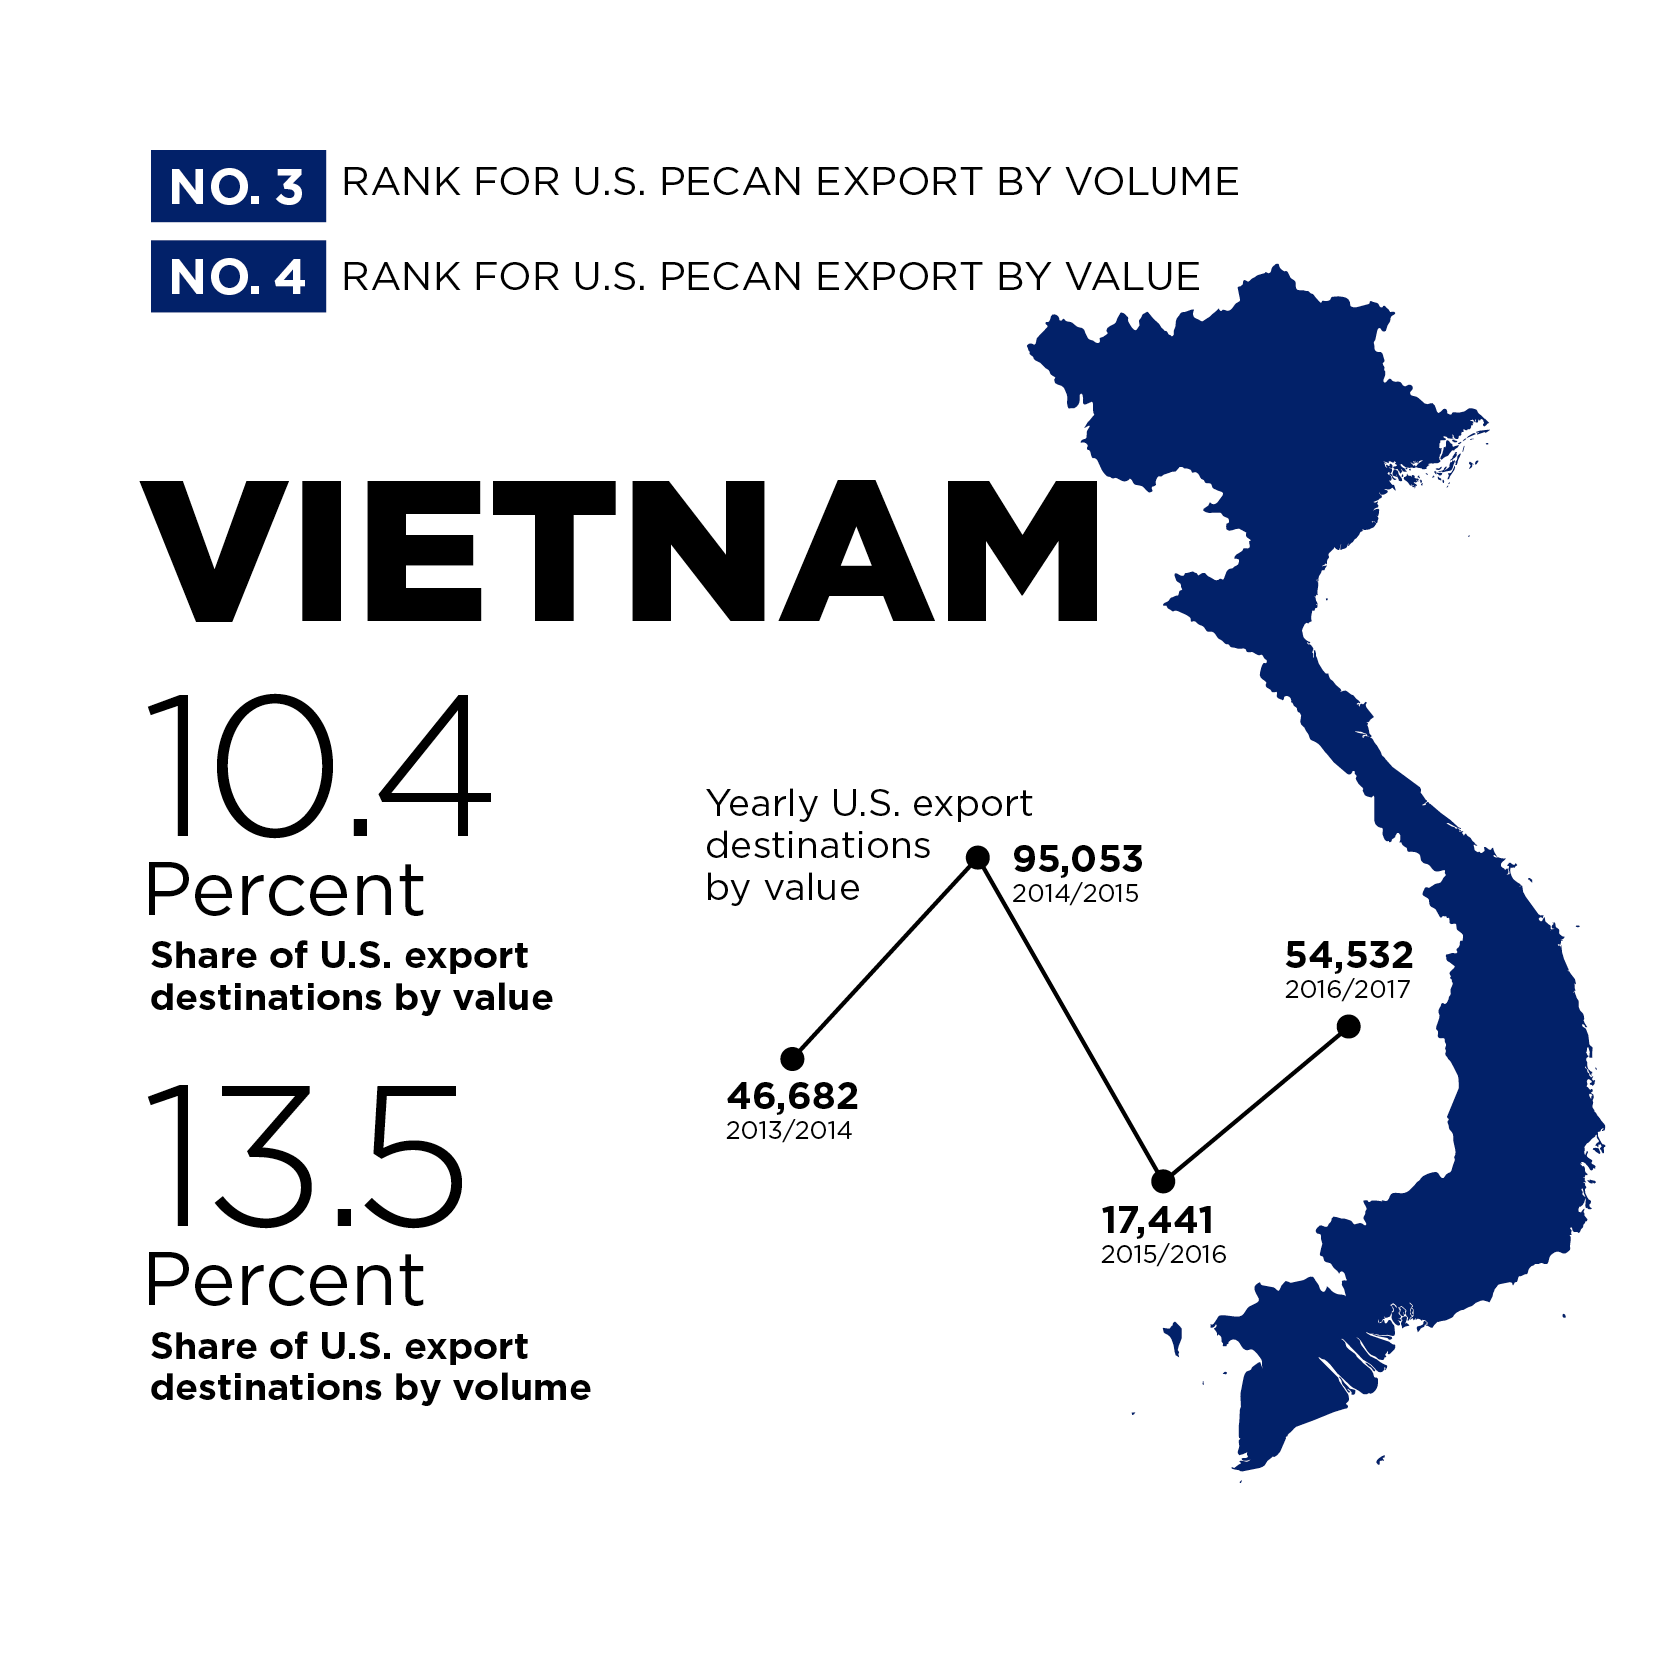 No. 3 Rank For U.S. Pecan Export By Volume and No. 4 Rank For U.S. Pecan Export By Value | Vietnam